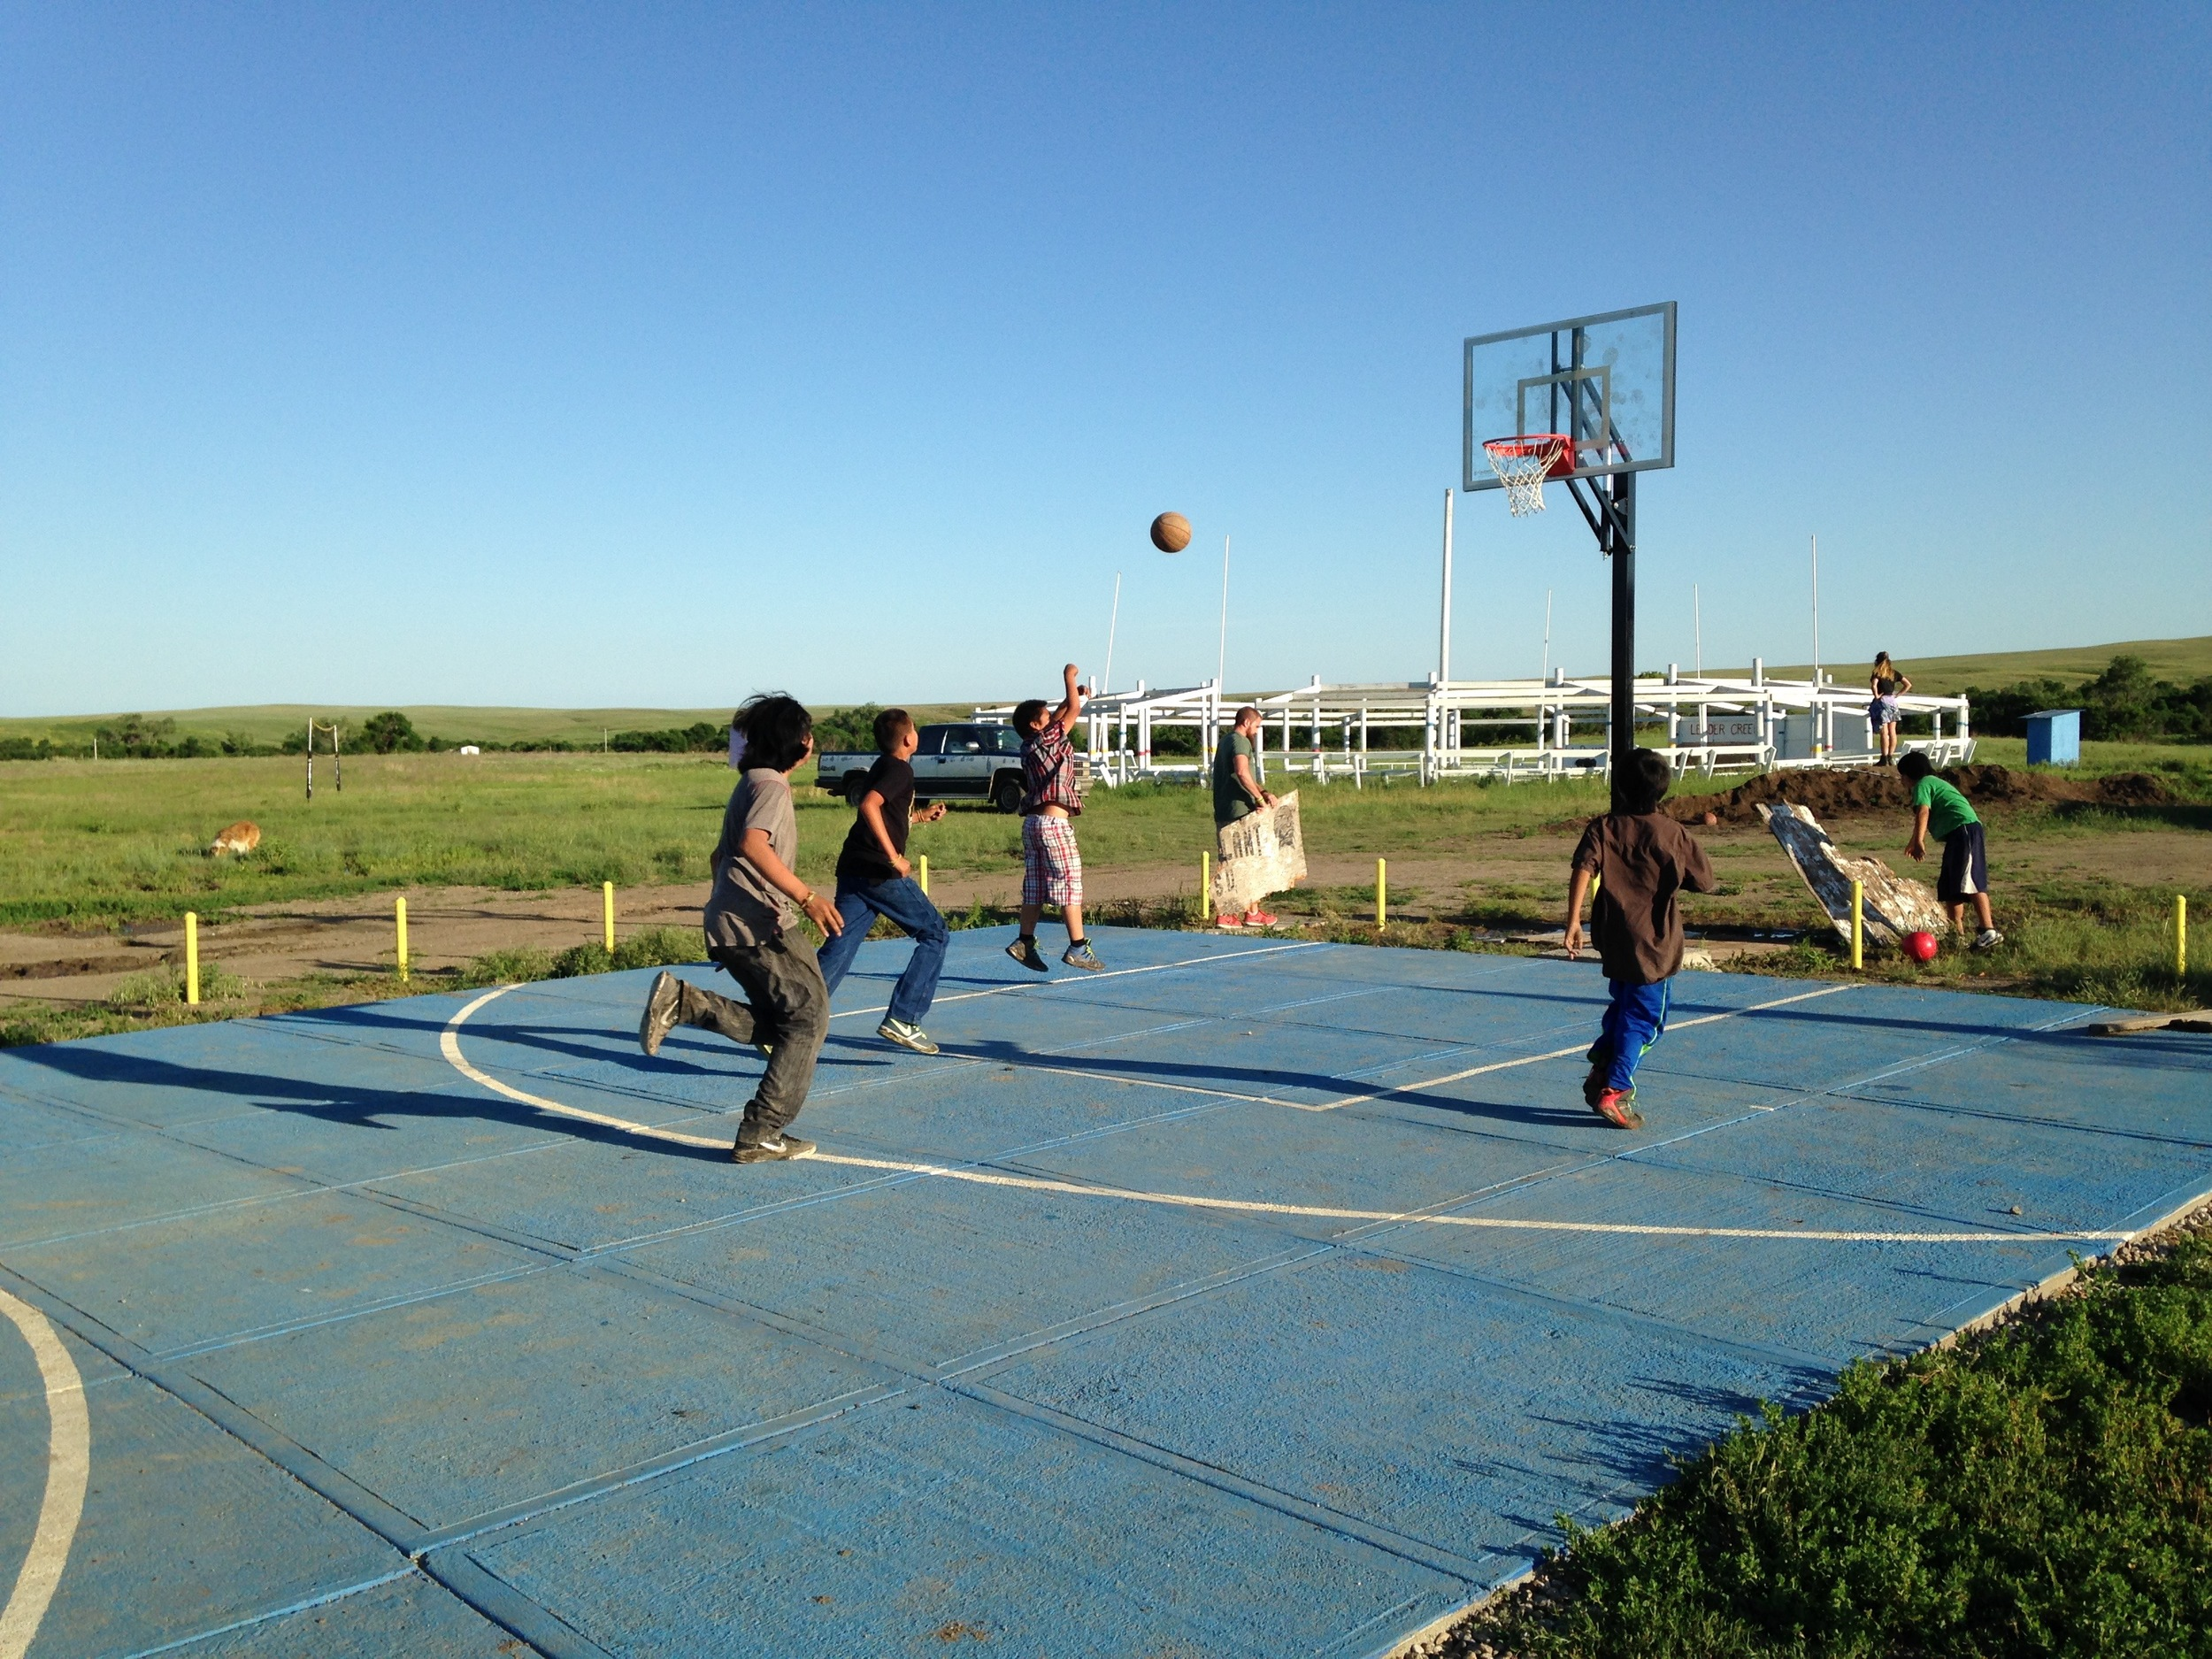 Basketball remains the go-to activity with the kids! (E. Russell, La Plant, June 2015)